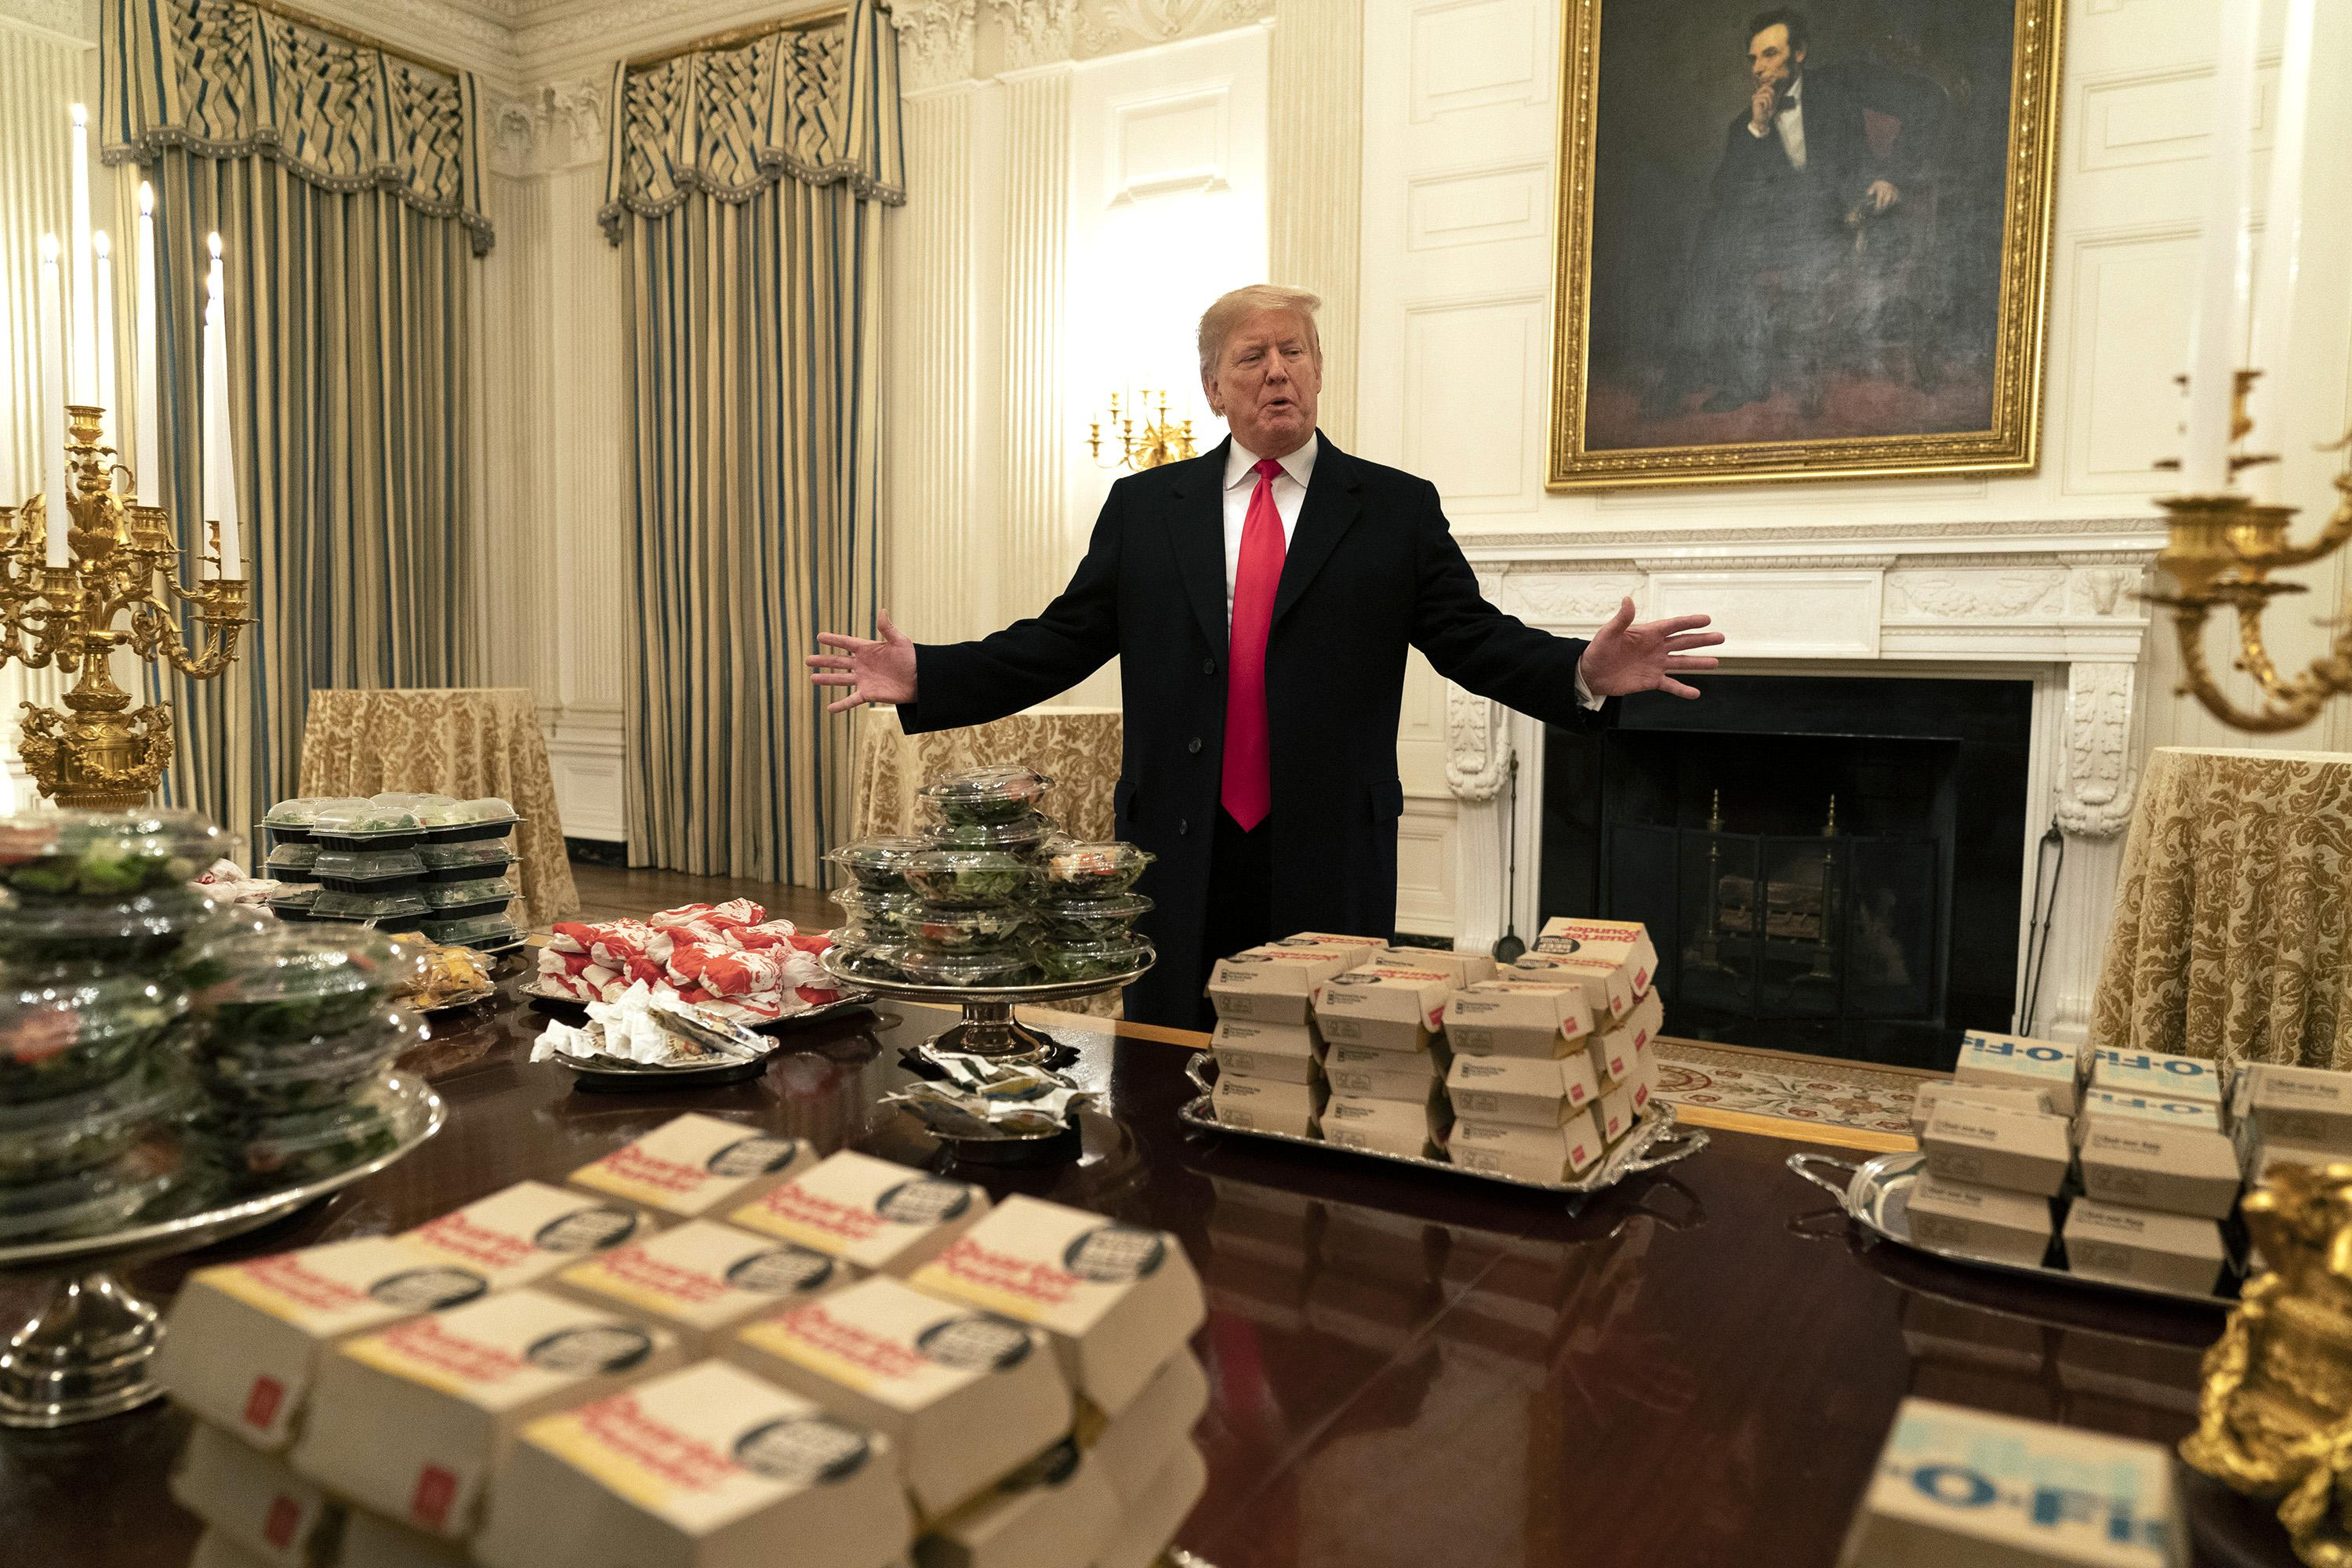 President Trump in front of the fast food to be served to the Clemson Tigers football team to celebrate their Championship at the White House on January 14, 2019 in Washington, DC.